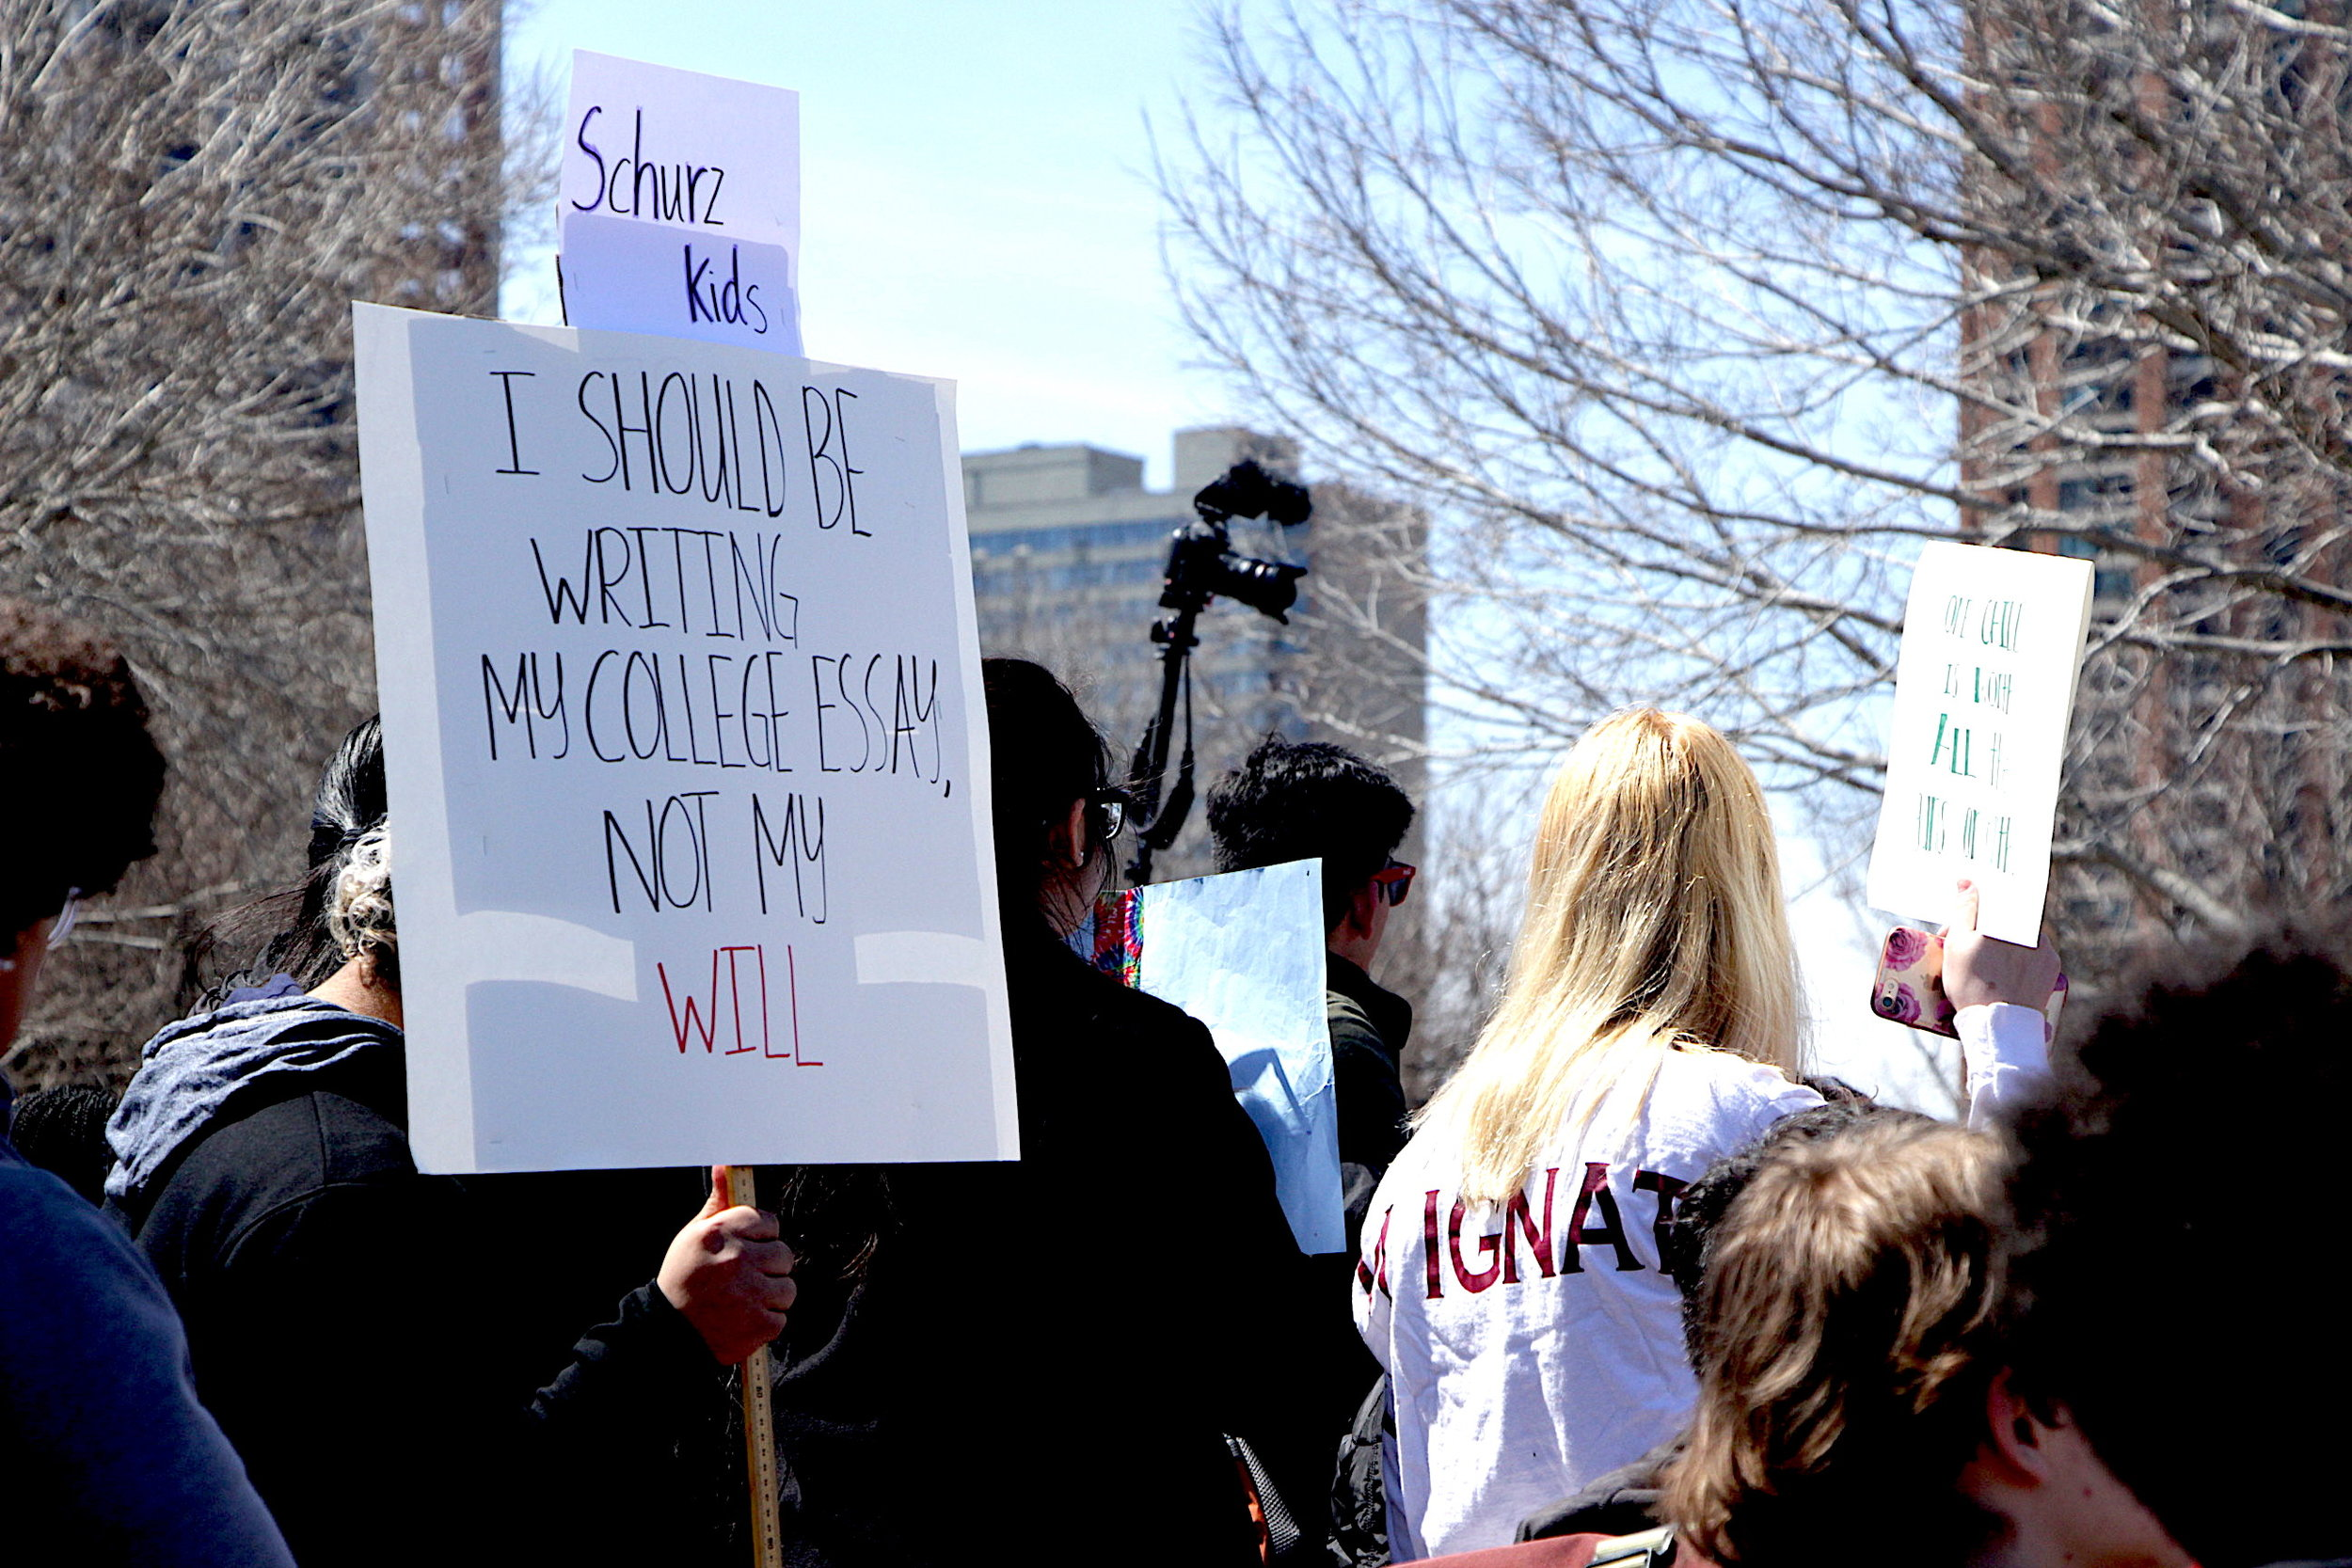 19 years after the Columbine shooting, students are fed up that their schools still aren't safe.